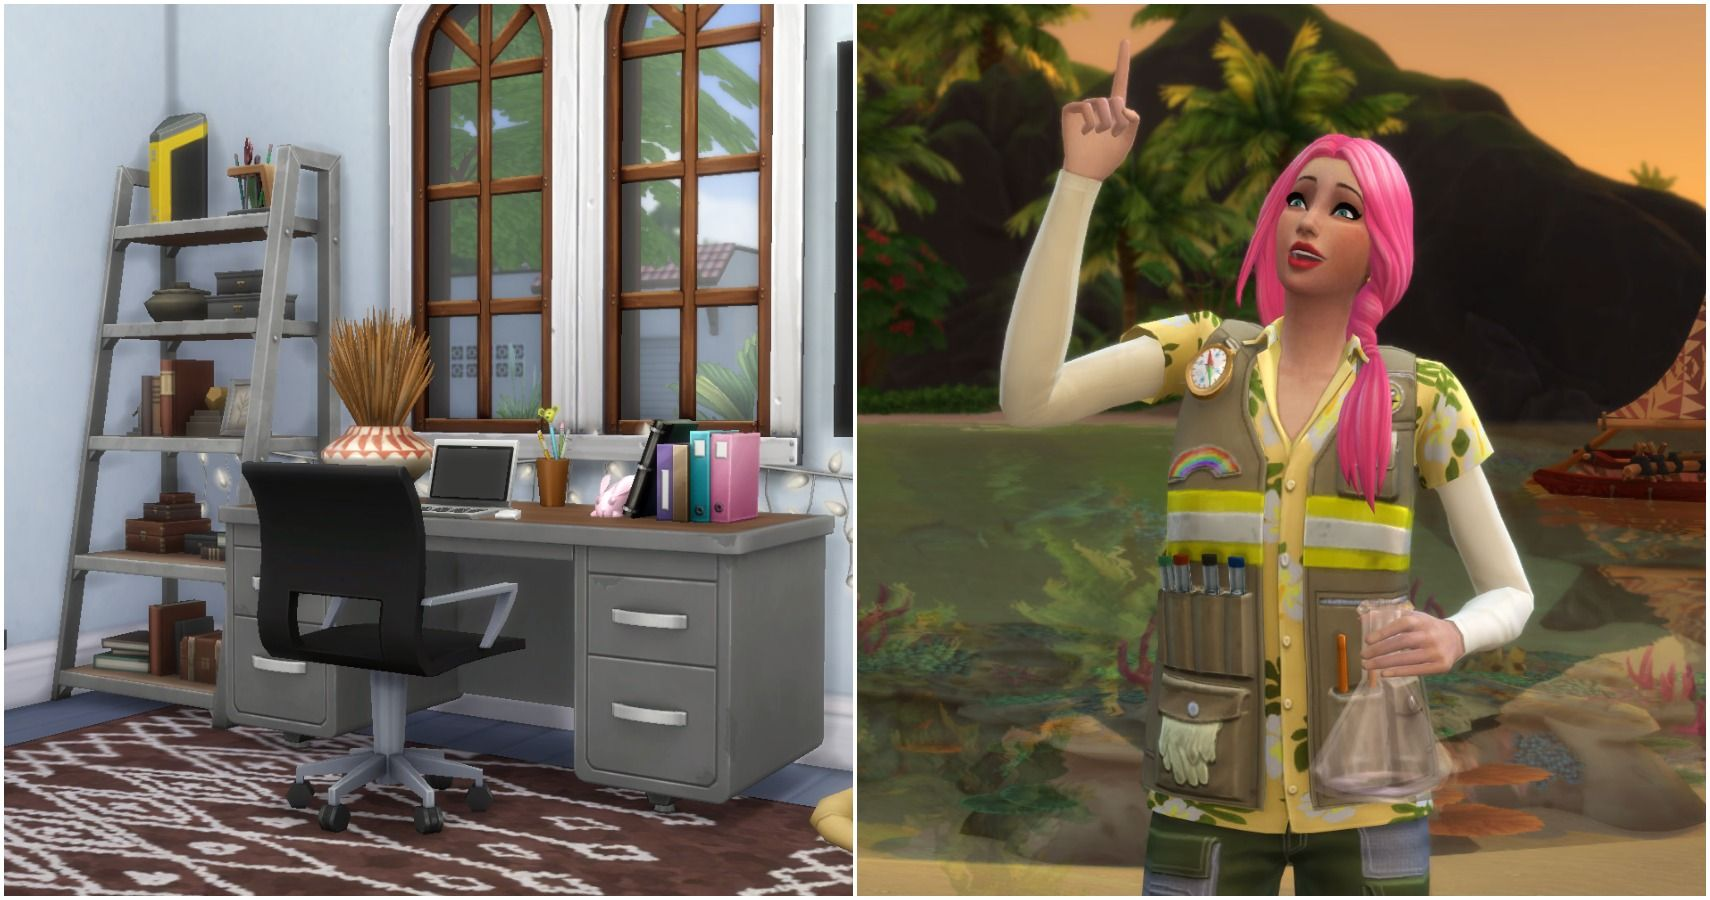 The Sims 4: The Best Career For Your Sim (Based On The University They Attended)